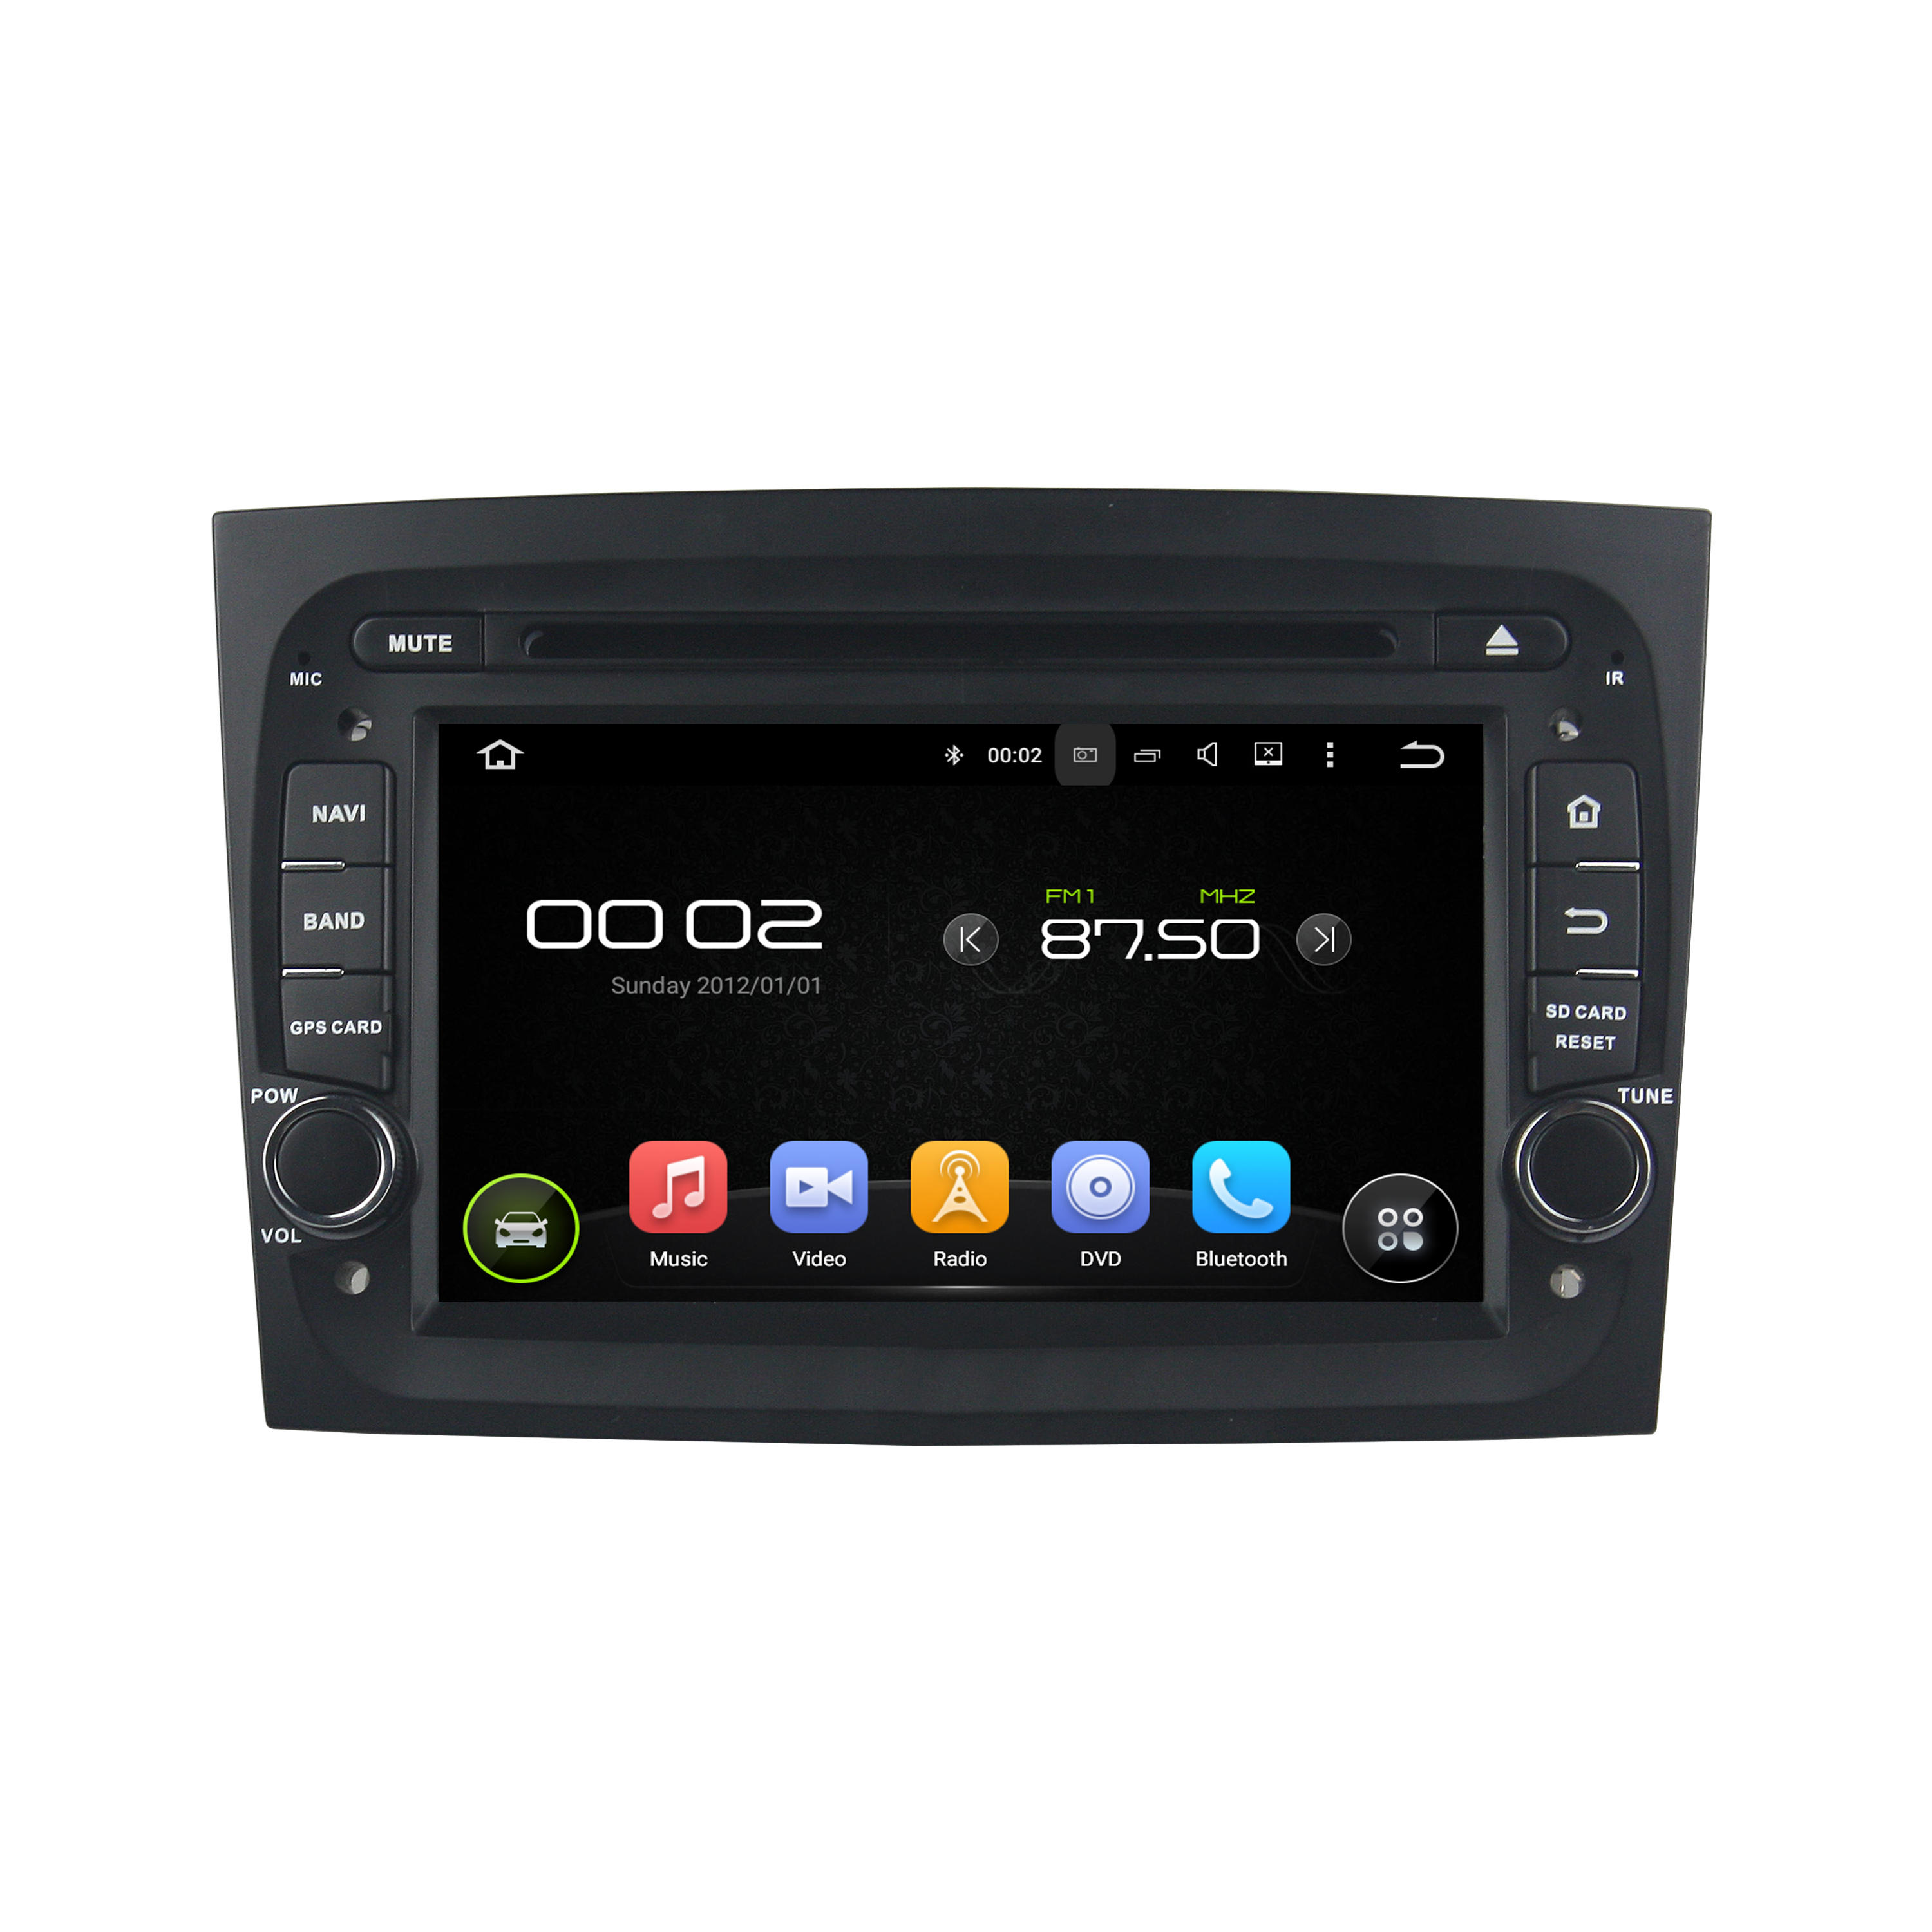 DOBLO 2016 7 inch Car DVD Player for Fiat series